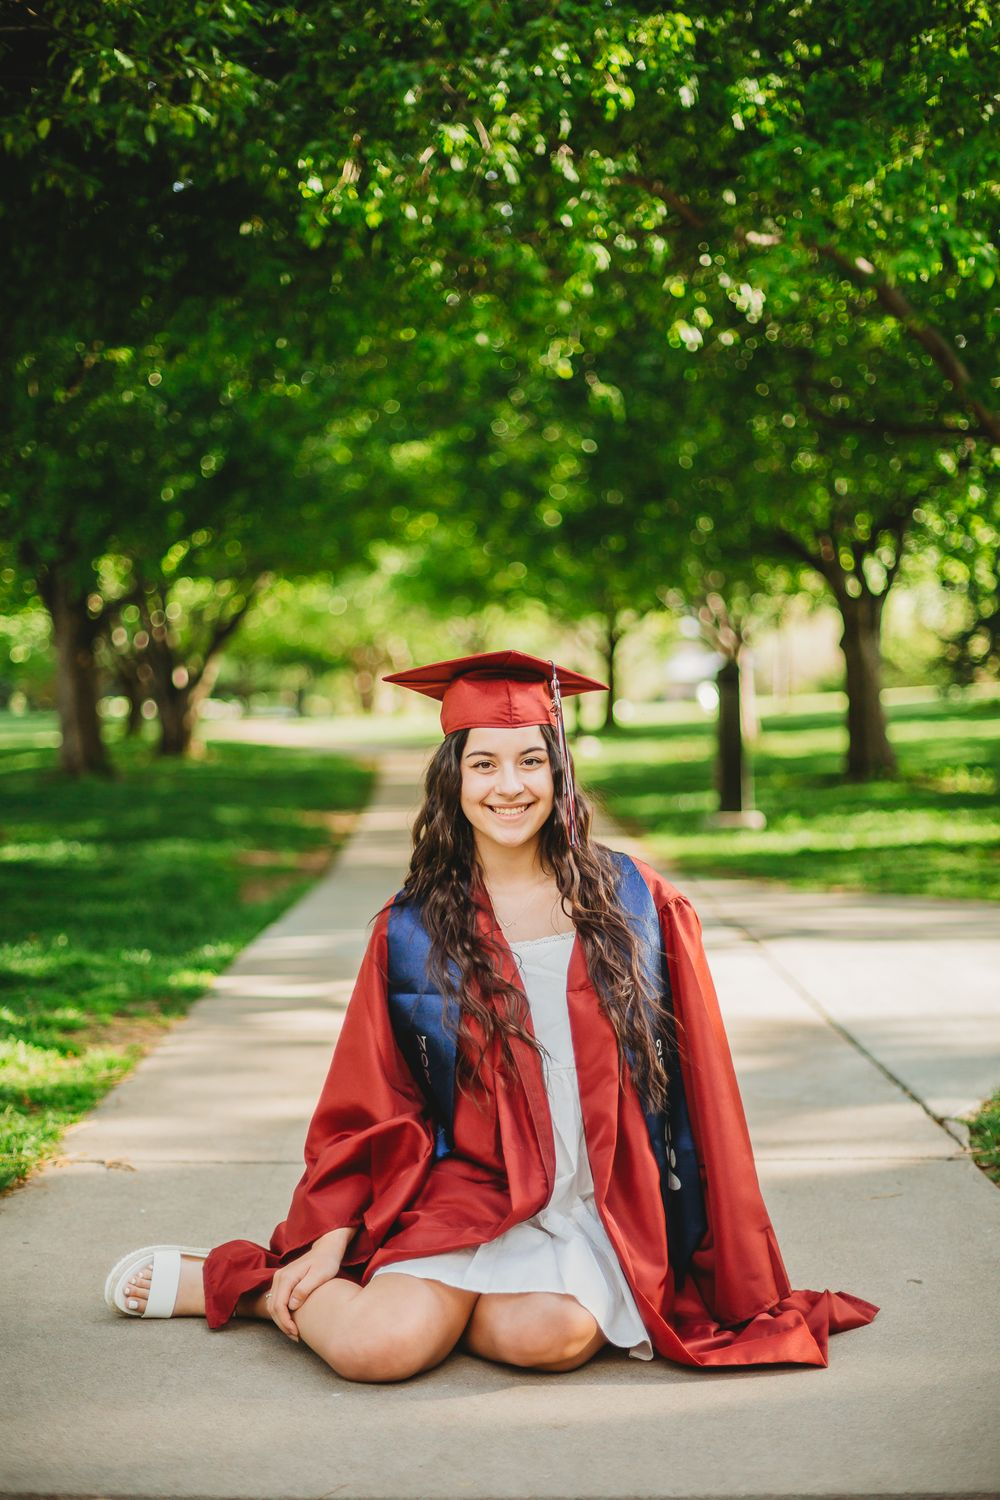 Cap and Gown Graduation Sessions by Natalie Dyer Photography in Northern Colorado